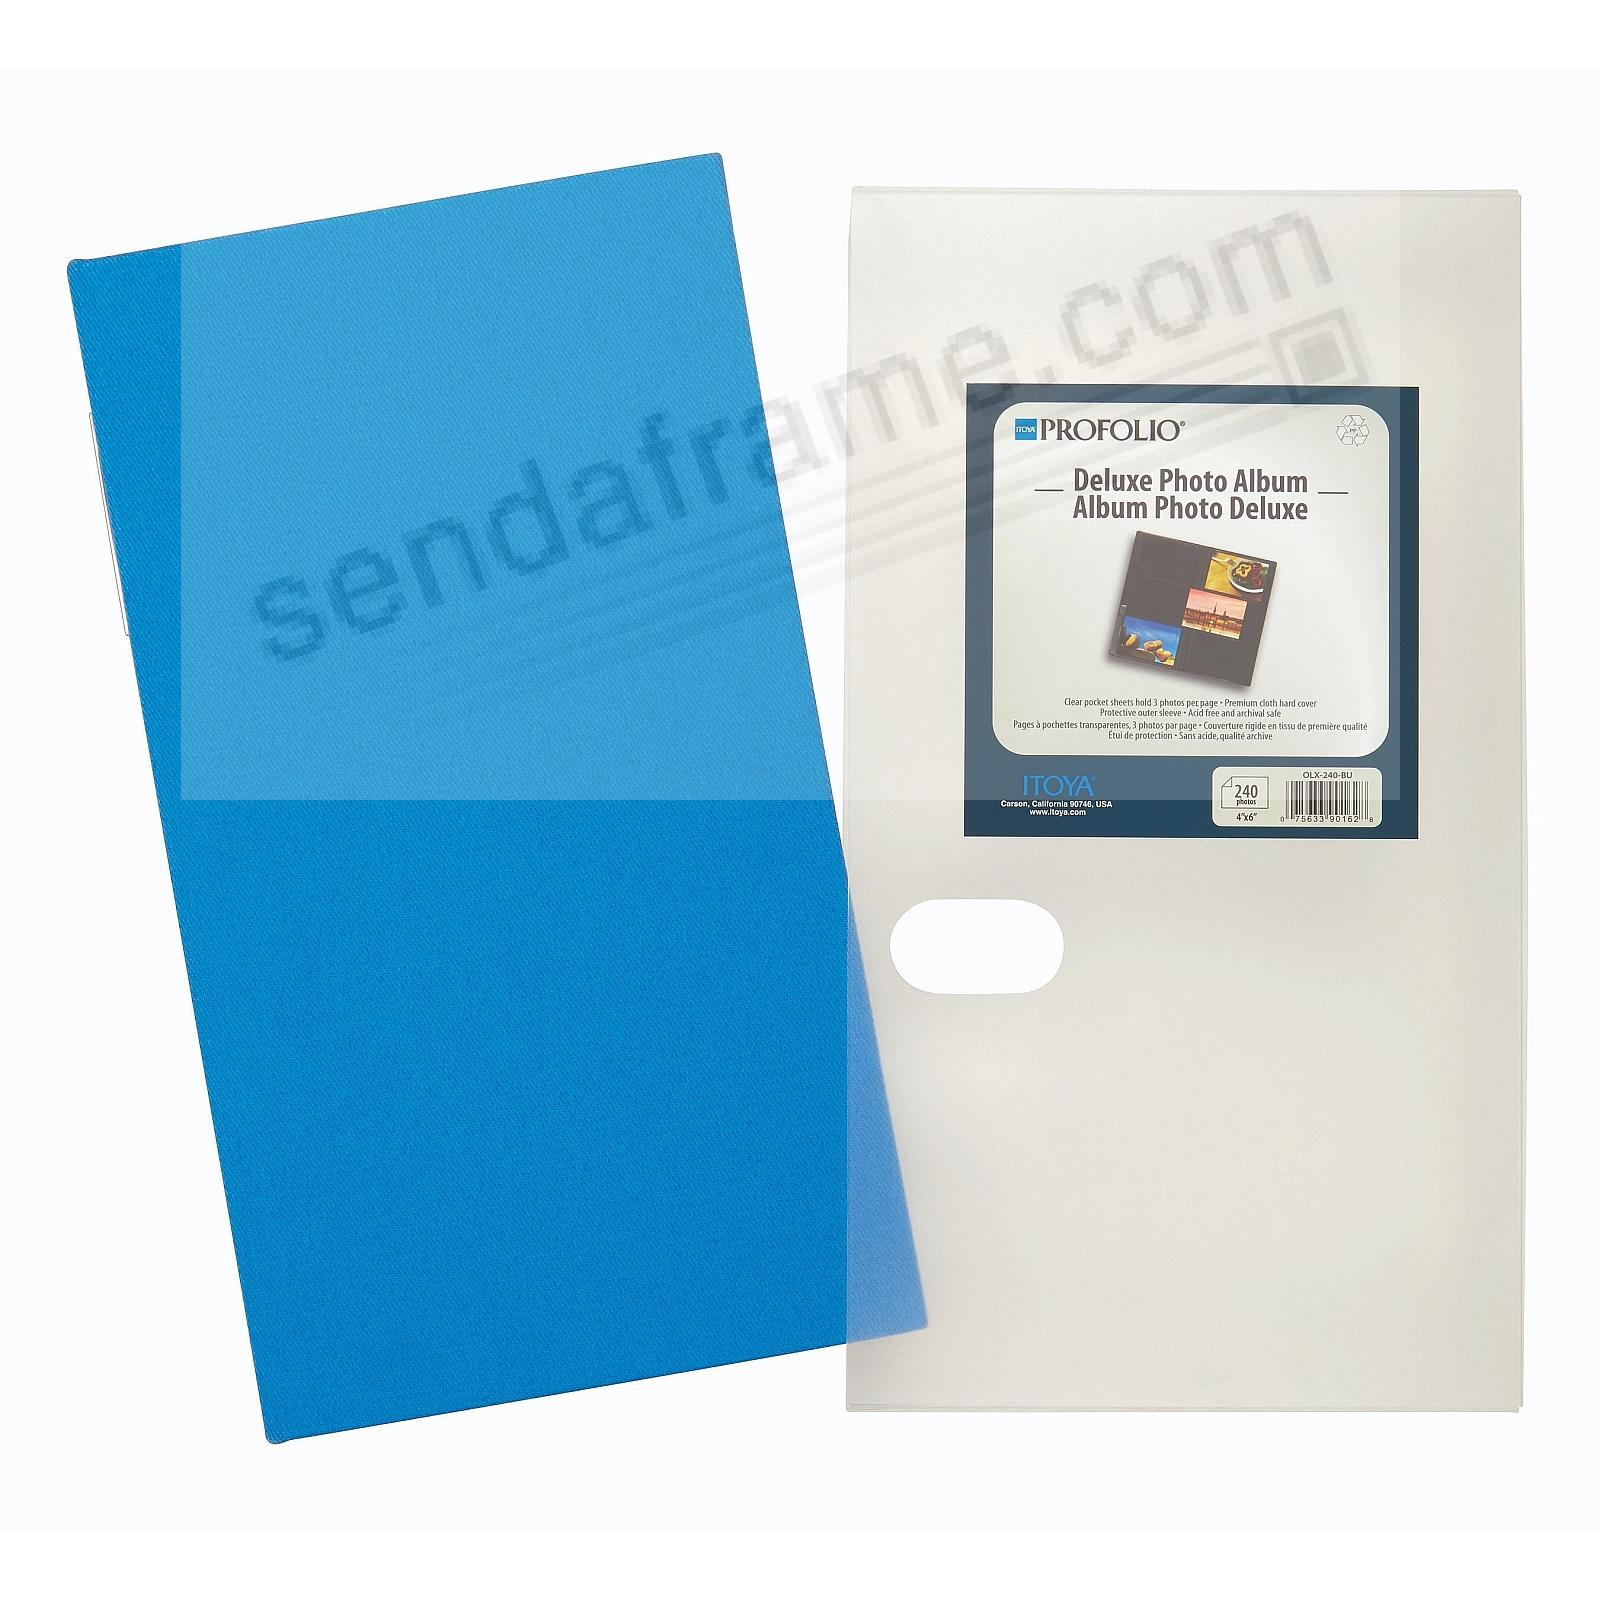 NEW! BLUE FABRIC 3-Up archival album for 240 4x6 prints by Itoya®